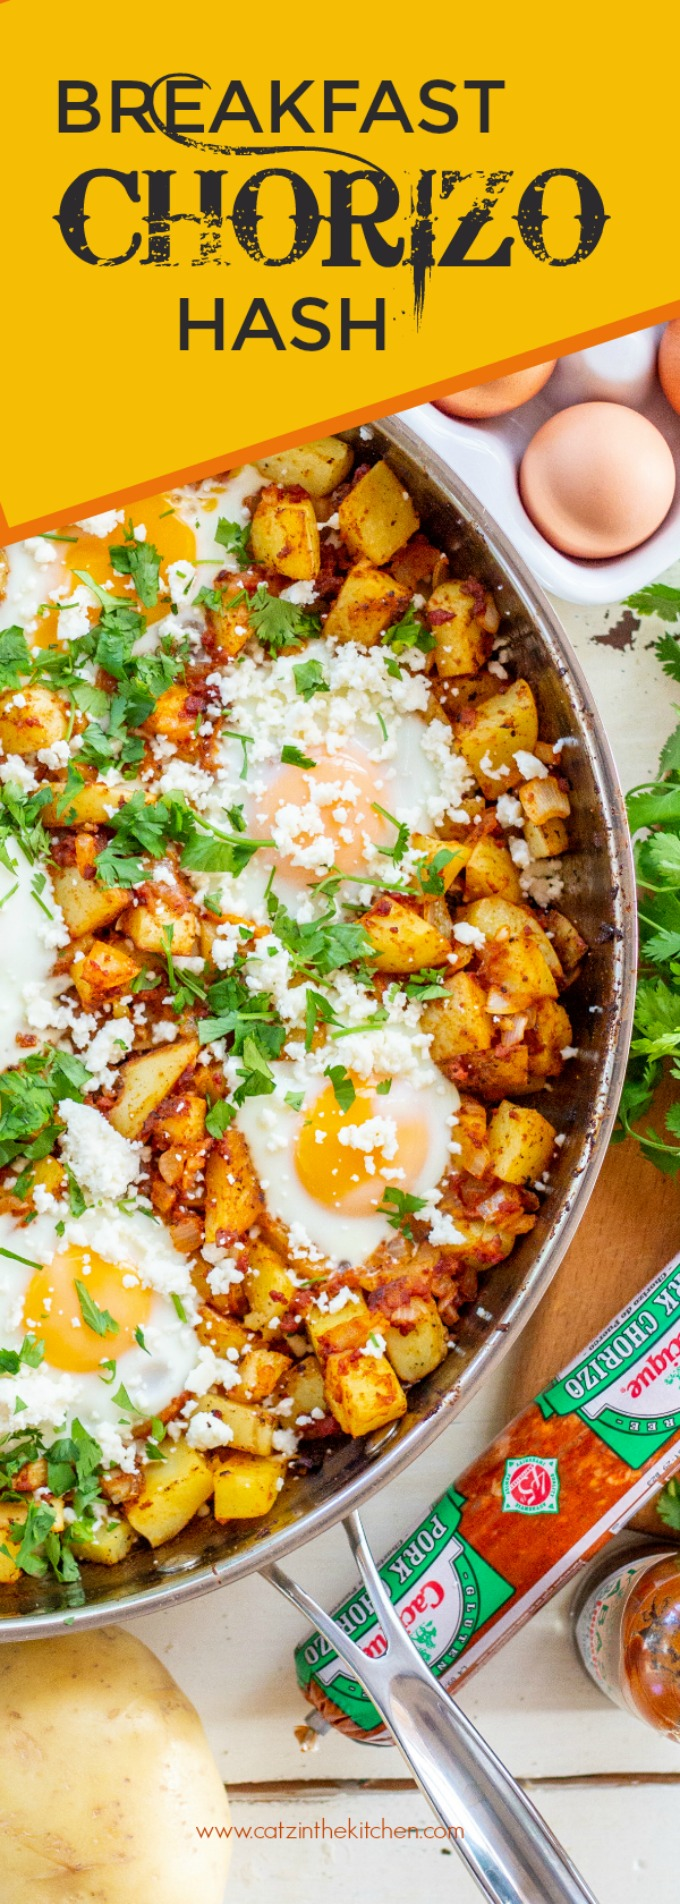 Brunch must be the best meal of the day, right? It certainly will be if you serve this yummy breakfast chorizo hash! Not a chorizo fan? Sub in some sausage!